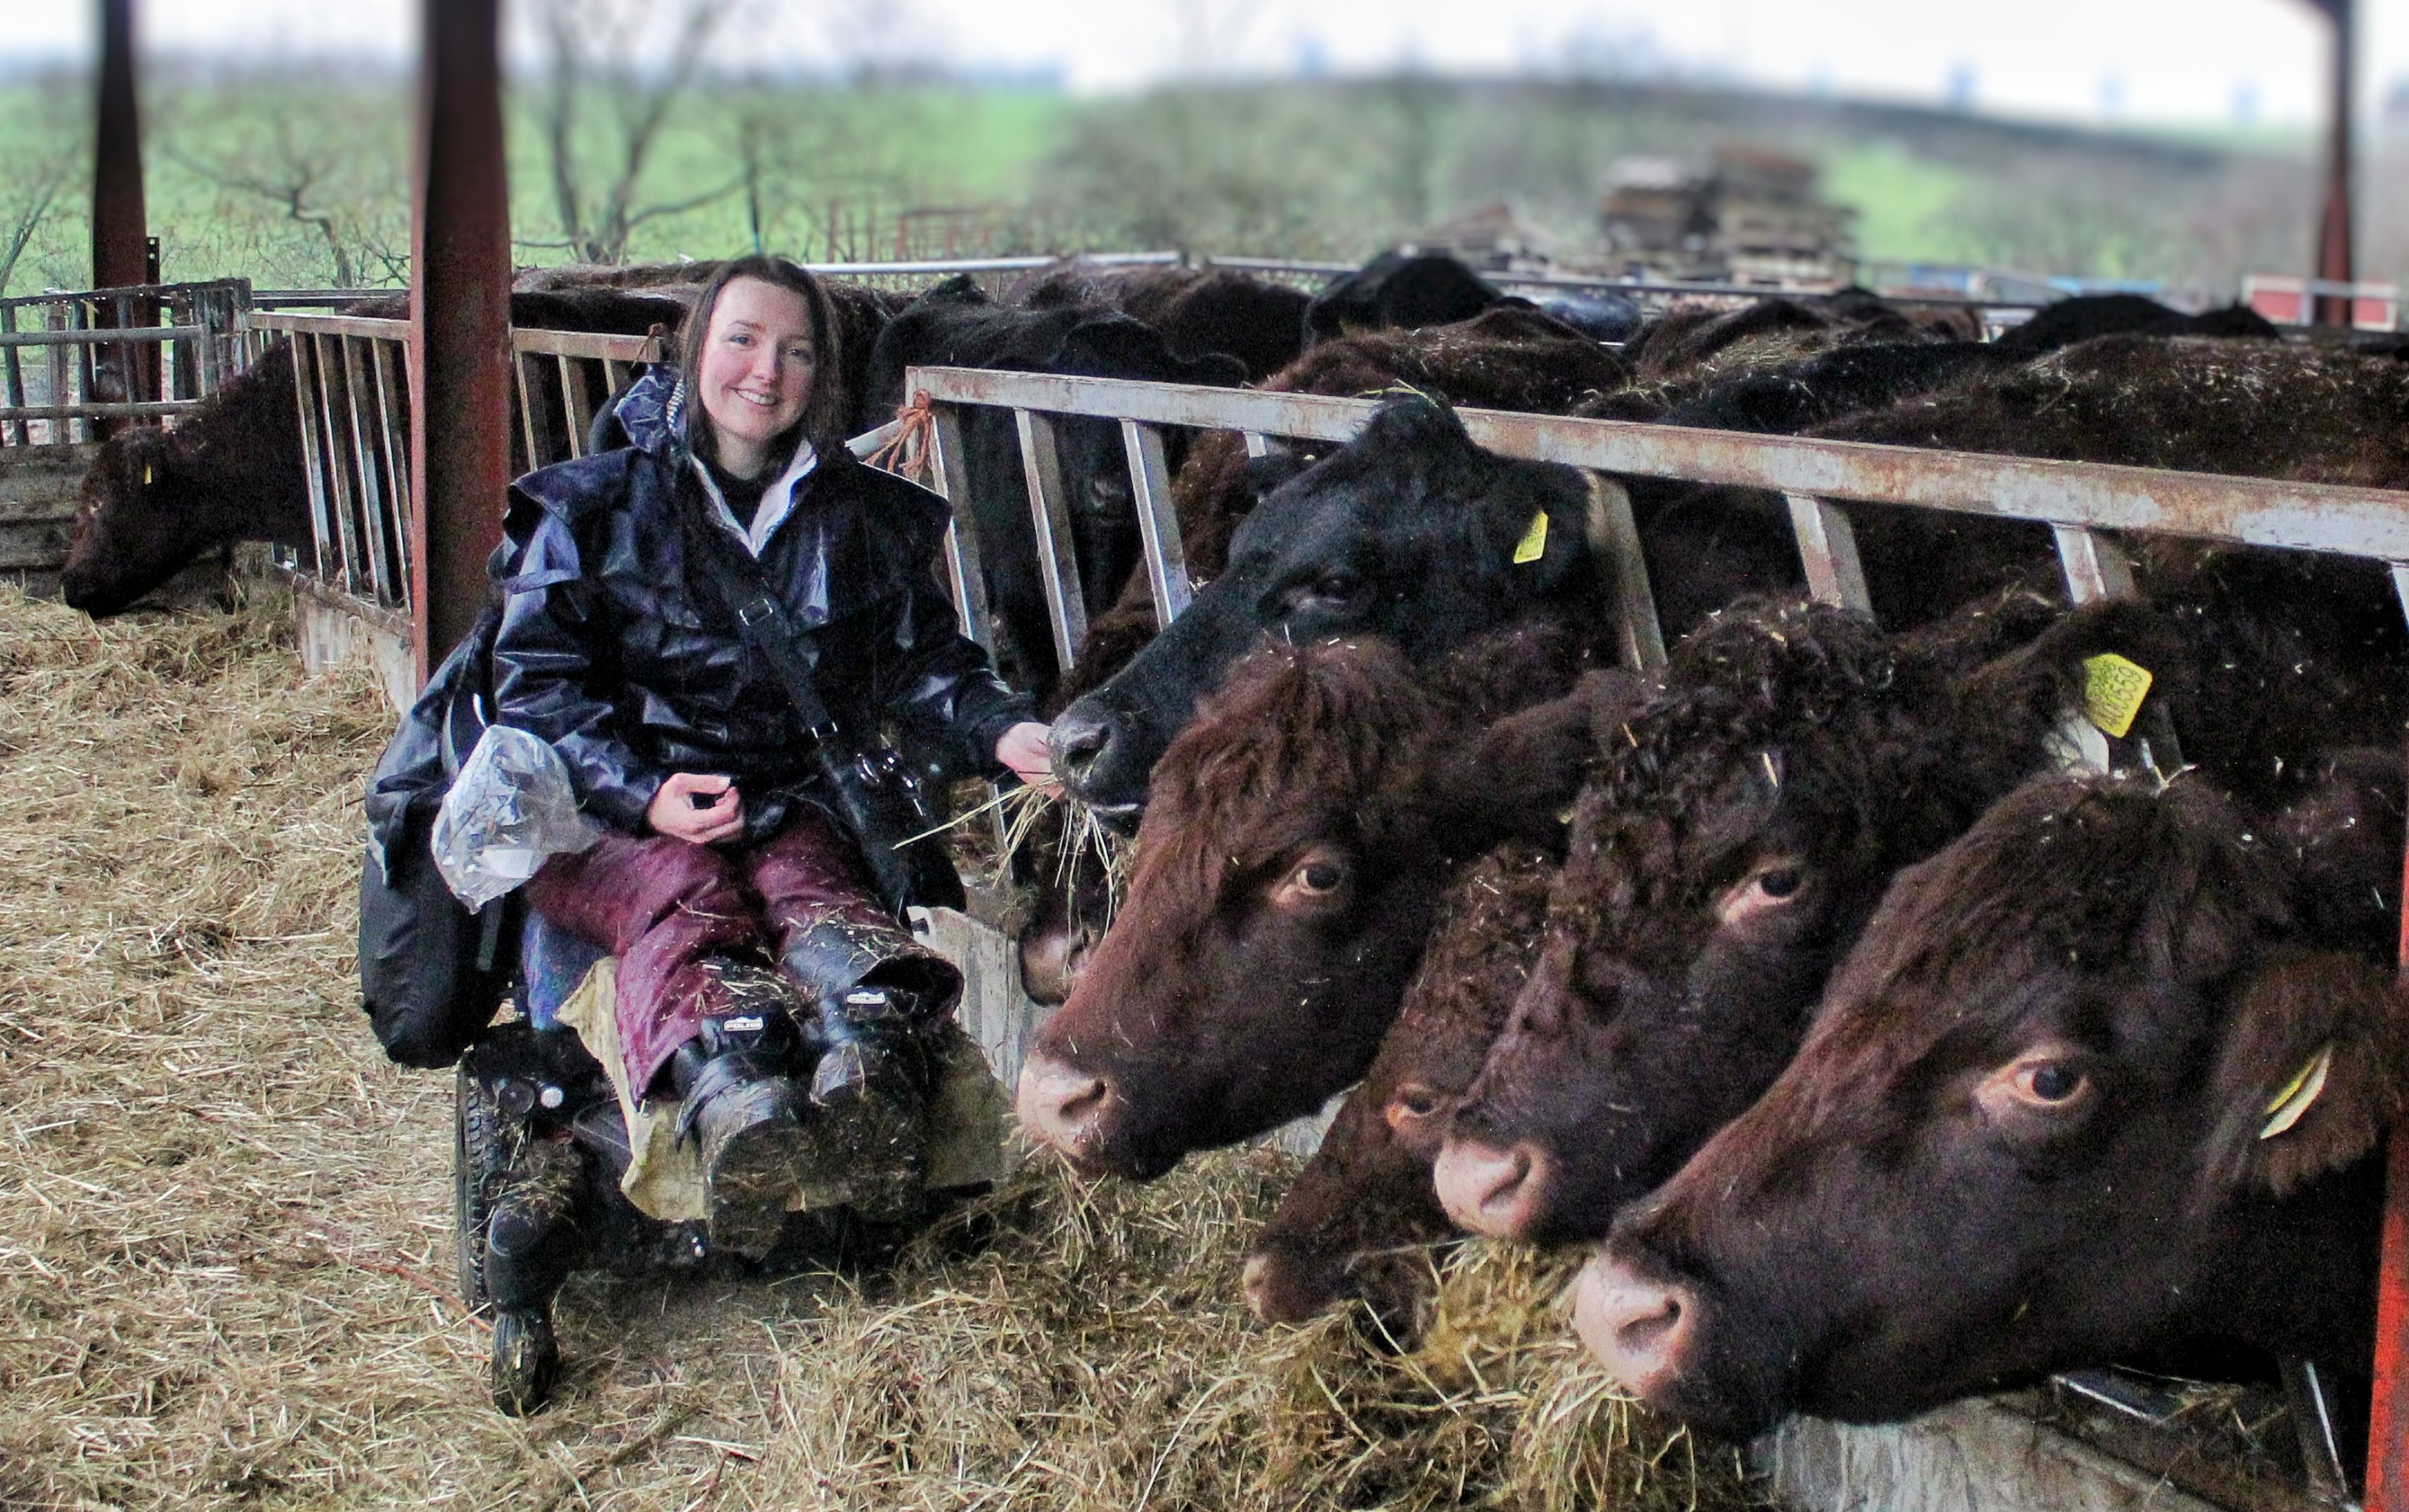 Holly, a white woman with brown, shoulder length hair, sitting in her powered wheelchair with the legs elevated next to a cattle shed with cows eating through the feed barrier